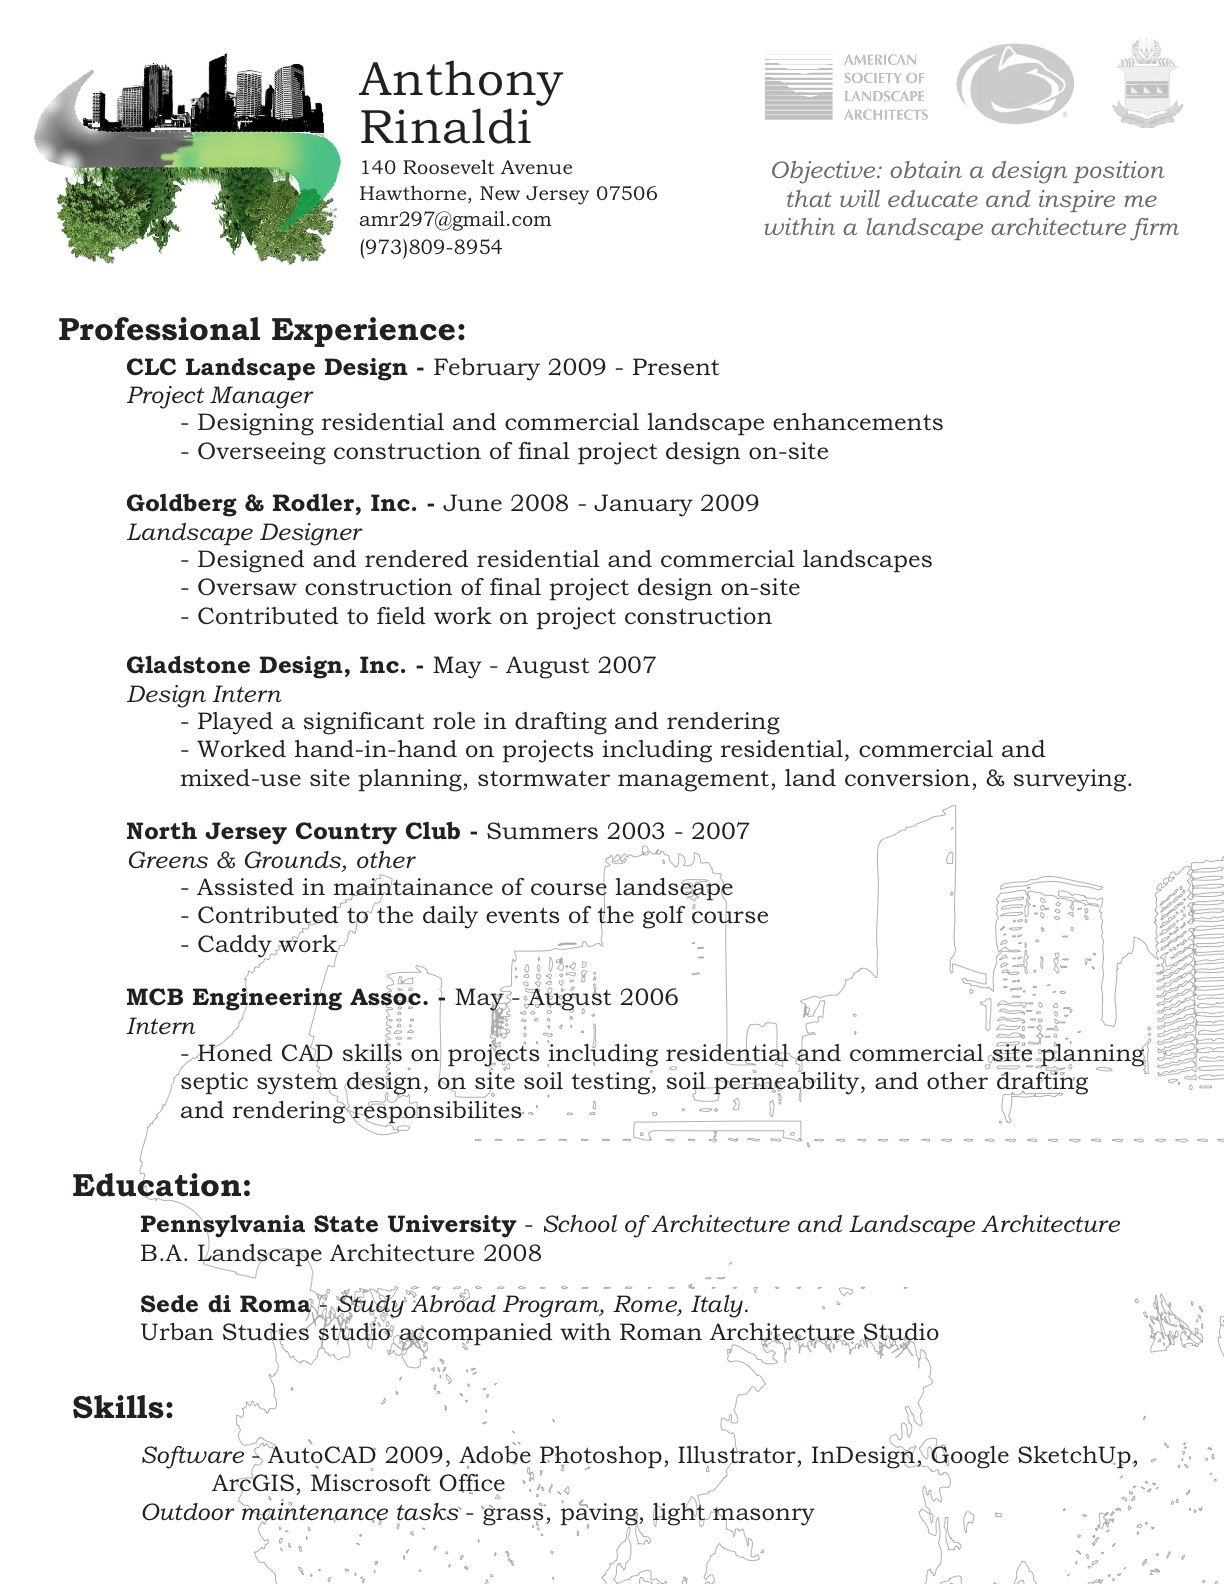 Basic Resume Template 2018 Landscape Architect Resume Templates  Bathroom Design 20172018